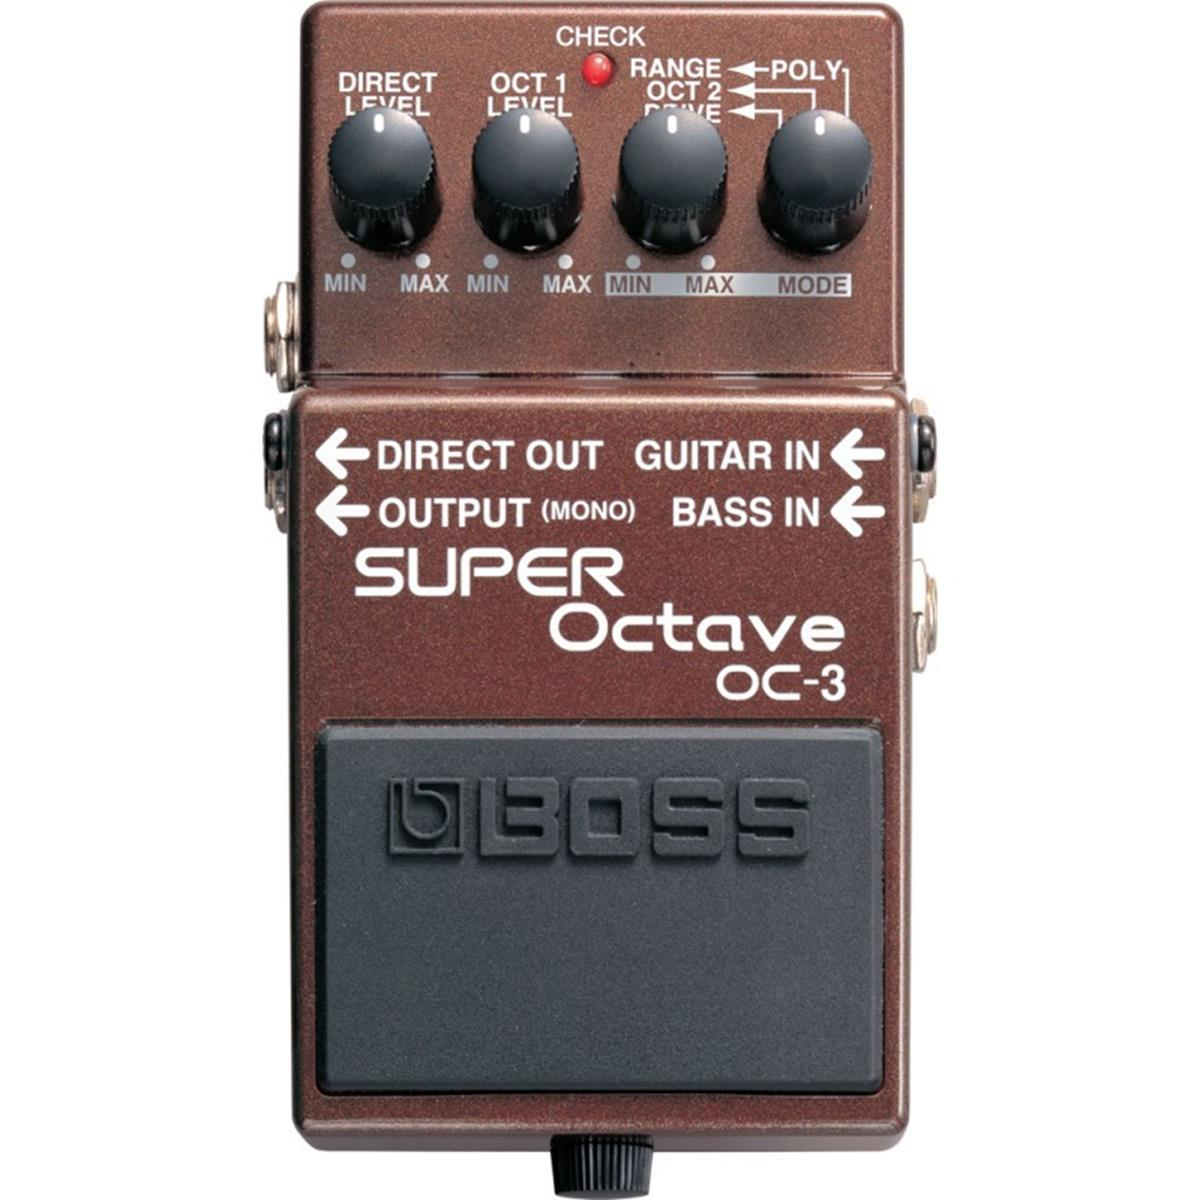 BOSS OC 3 SUPER OCTAVE